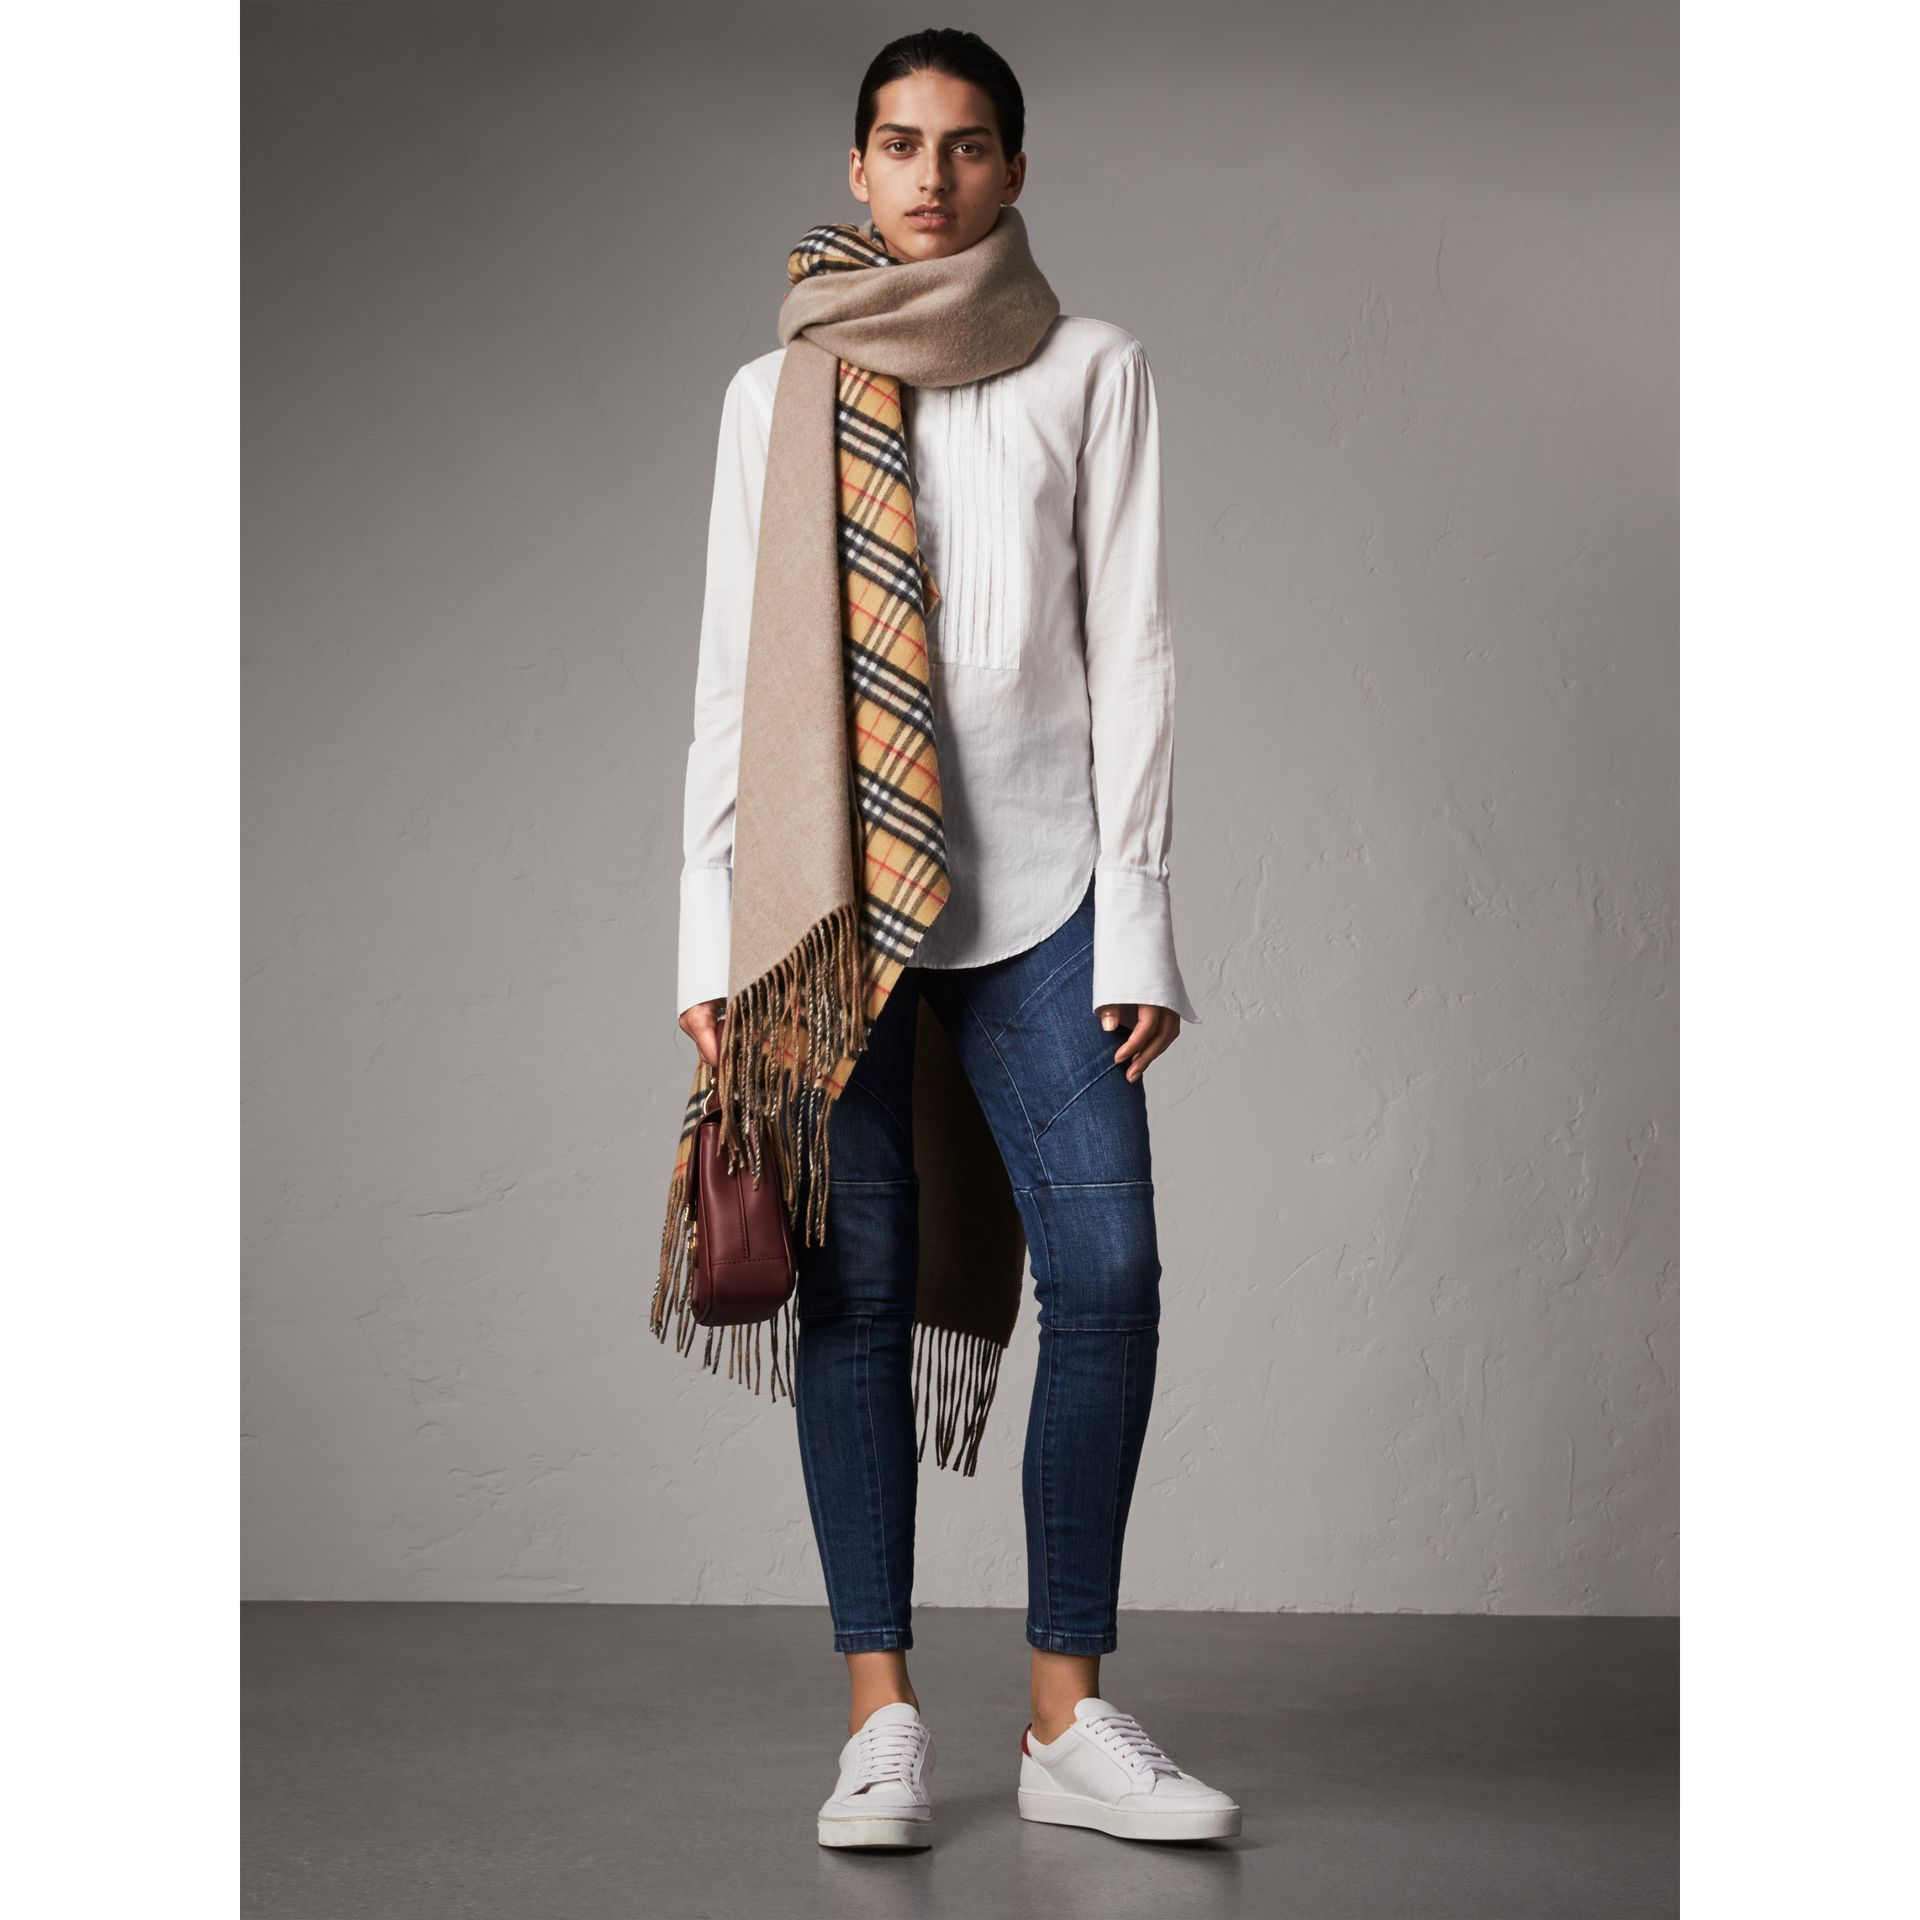 Reversible Vintage Check Cashmere Wool Poncho in Sandstone - Women | Burberry - gallery image 5